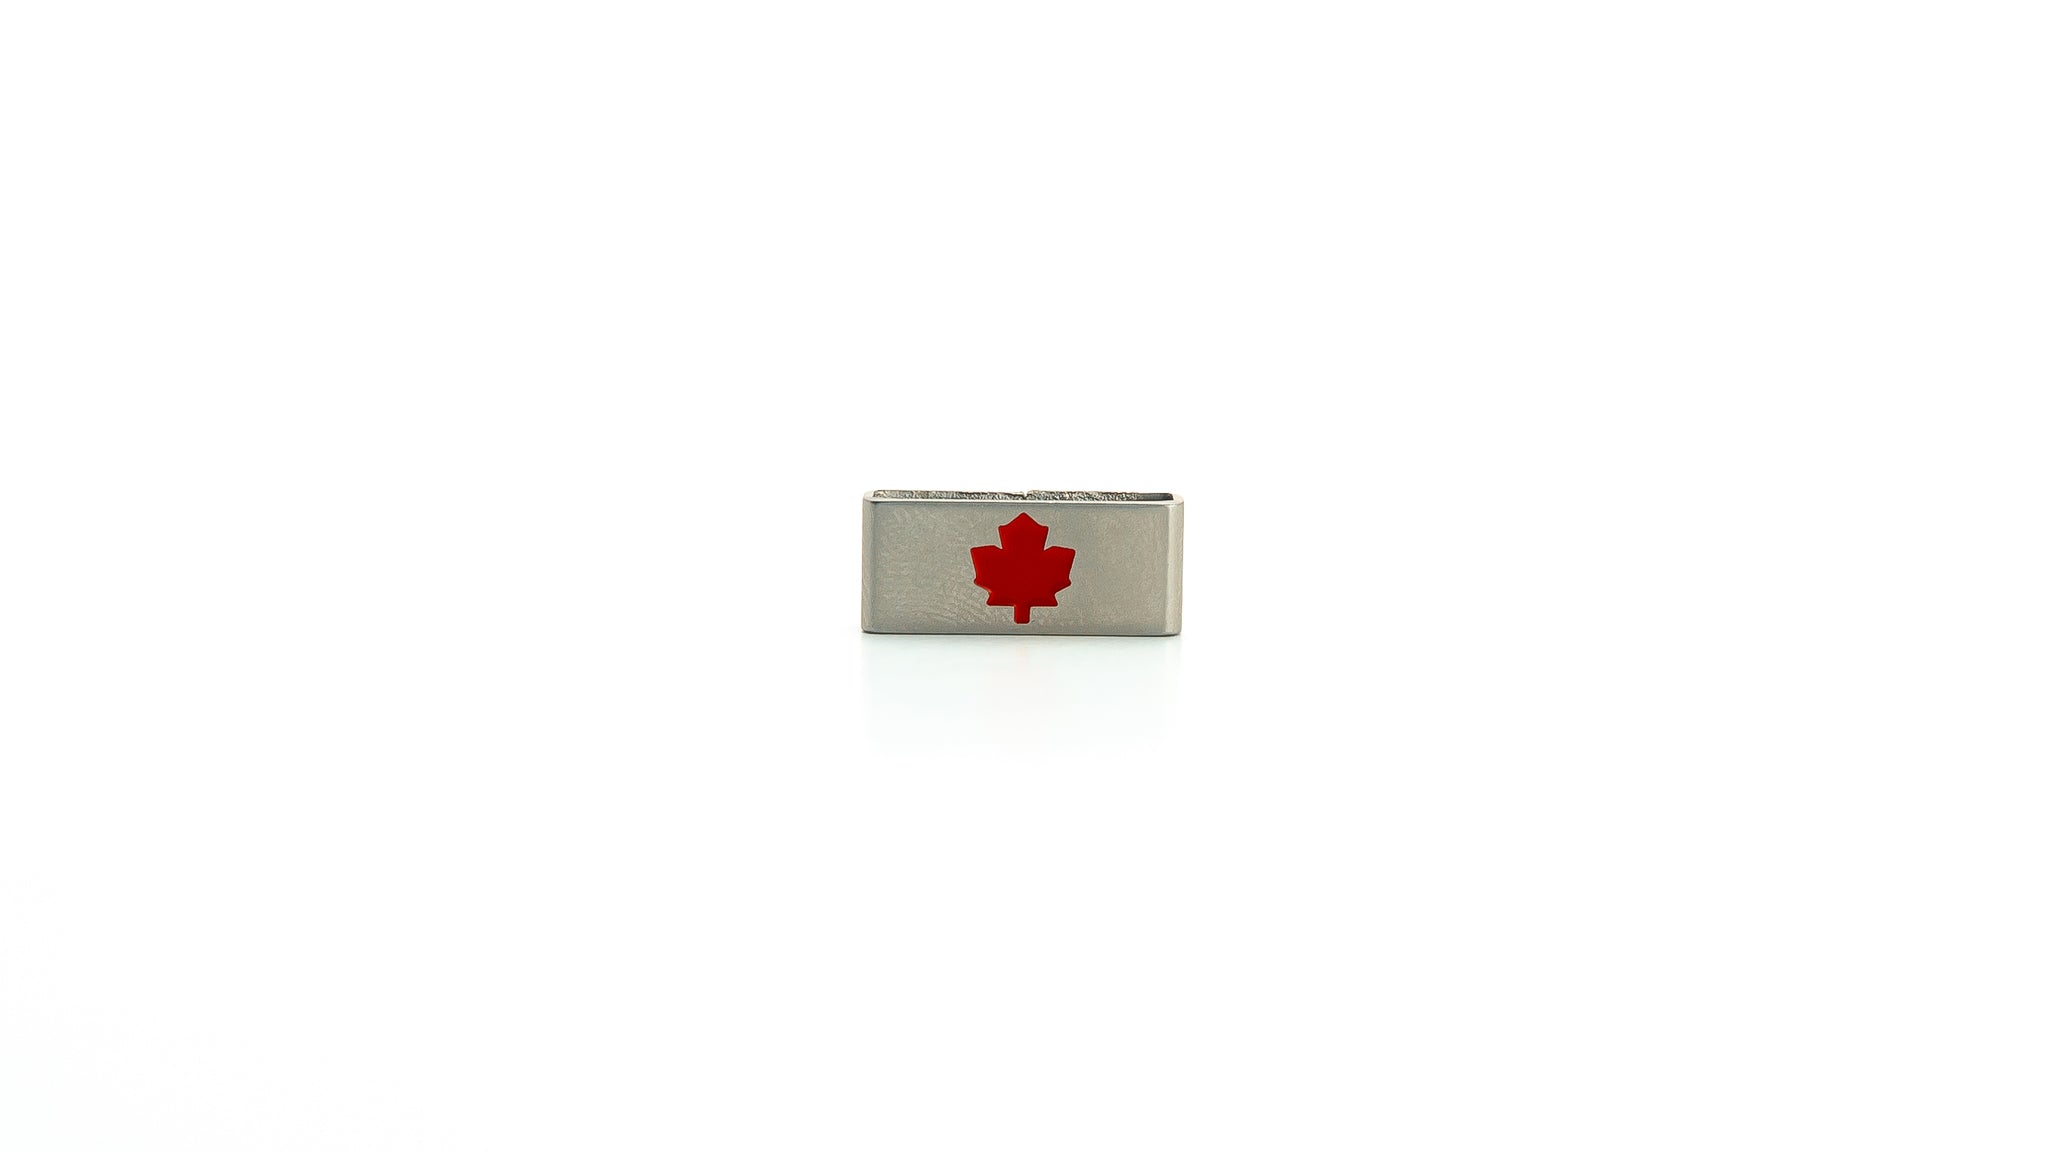 Maple Leaf stainless steel tag. Collection tag. Radtagz collectible charm tag. Mens stainless steel jewelry